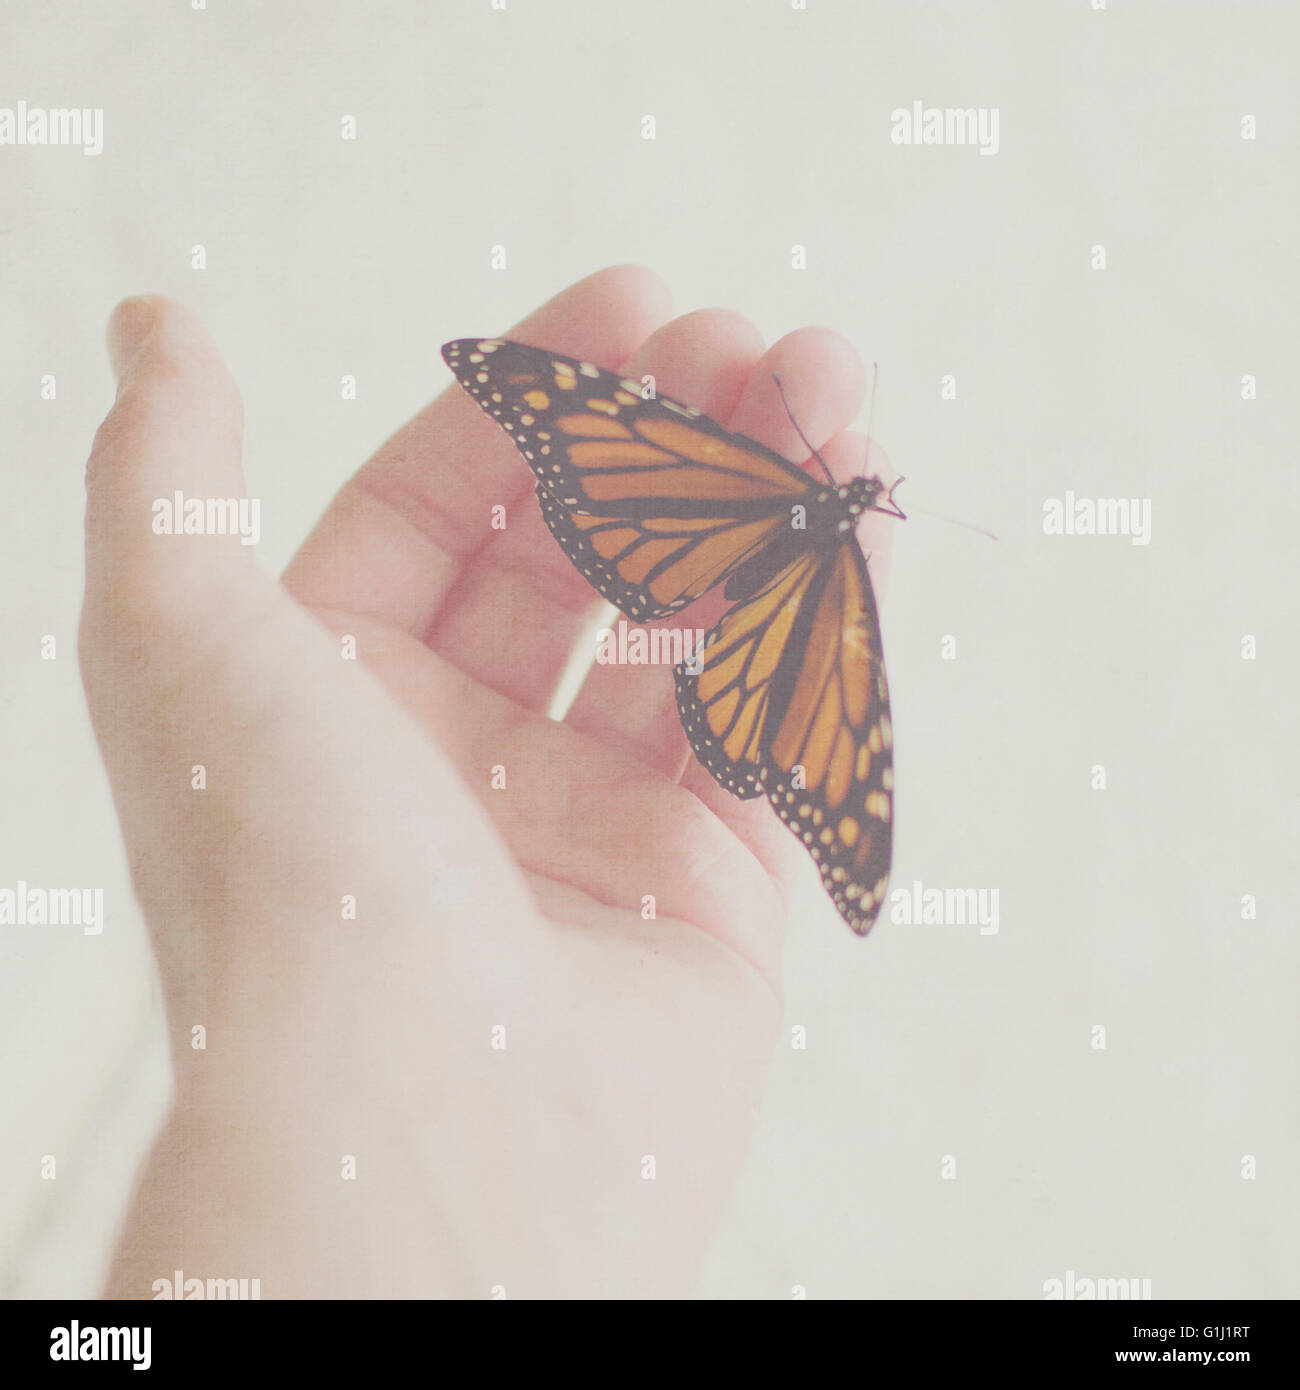 Monarch Butterfly on woman's hand Stock Photo